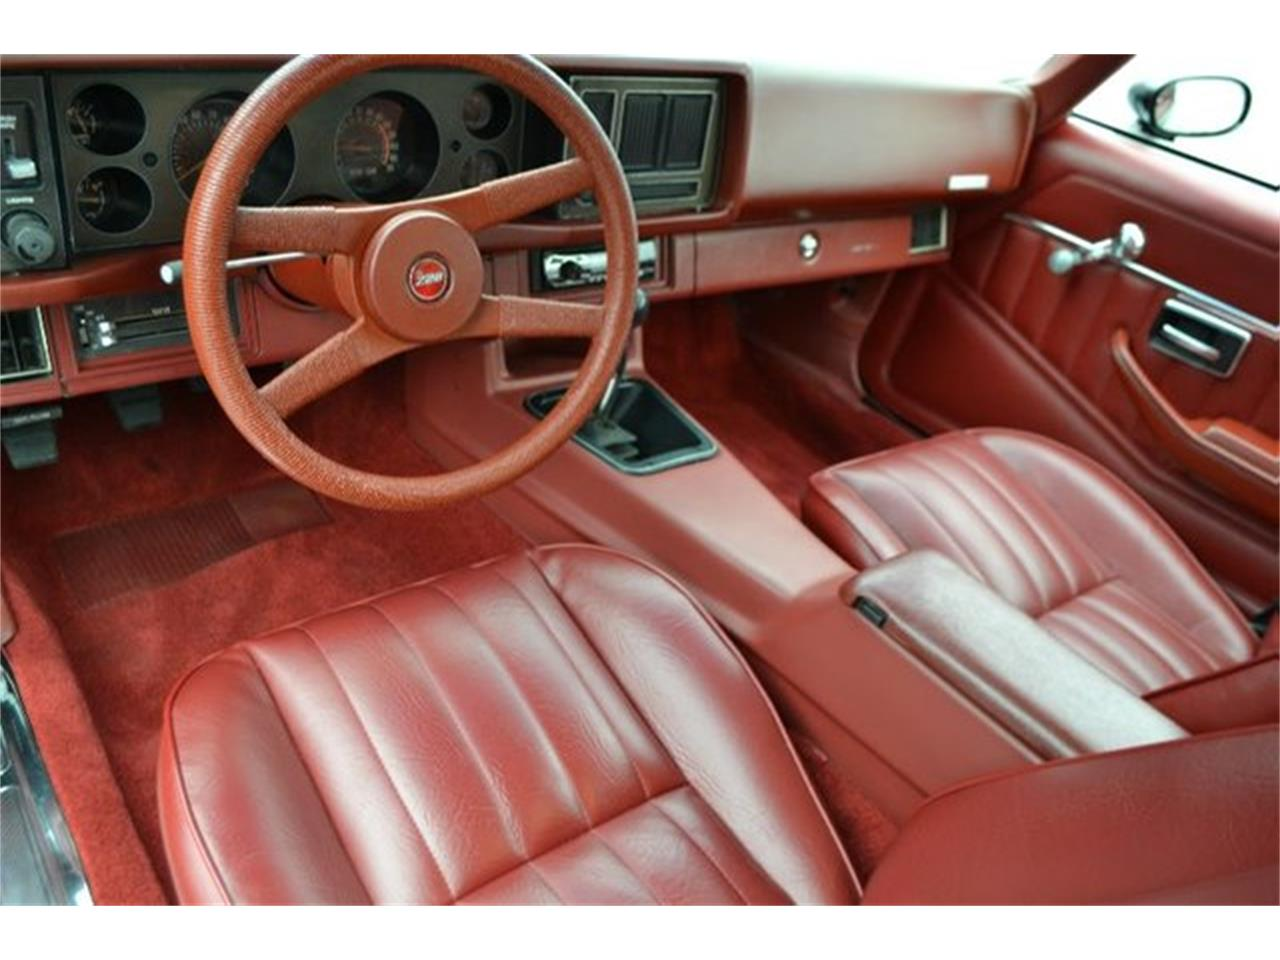 1979 Chevrolet Camaro for sale in Hickory, NC – photo 33